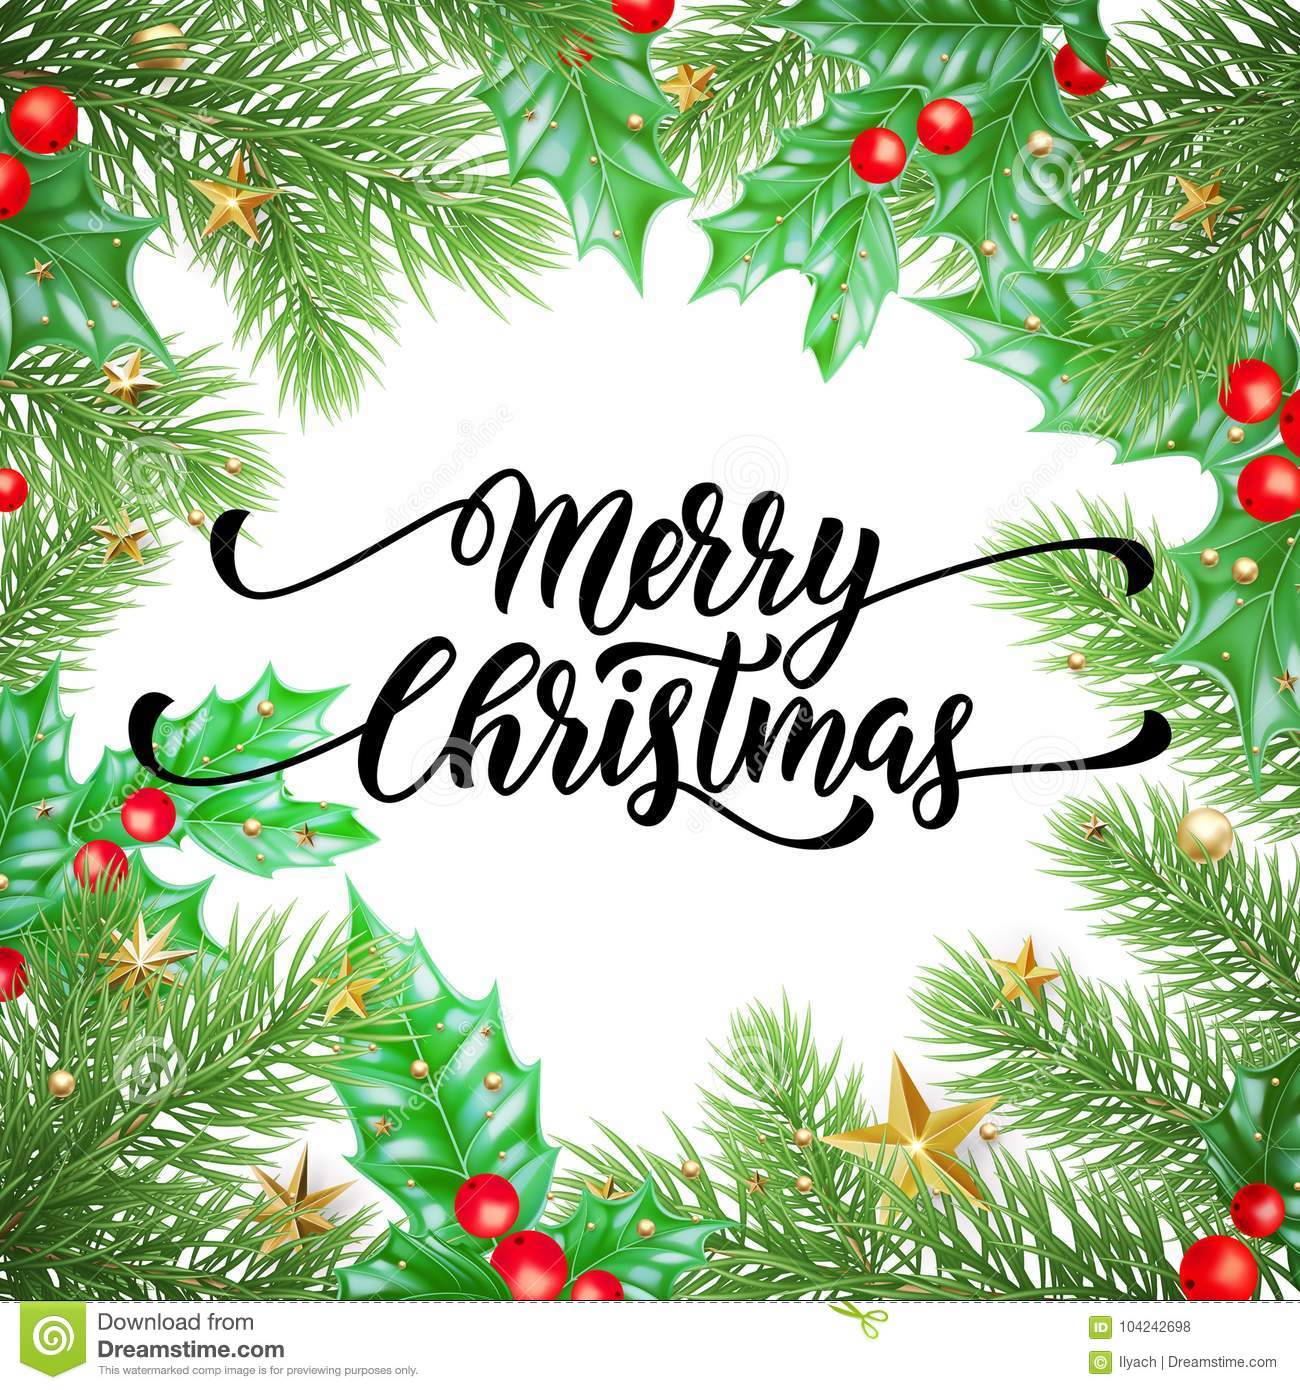 Merry christmas holiday hand drawn quote calligraphy greeting card merry christmas holiday hand drawn quote calligraphy greeting card background template vector christmas stars garland tree holly wreath decoration on maxwellsz